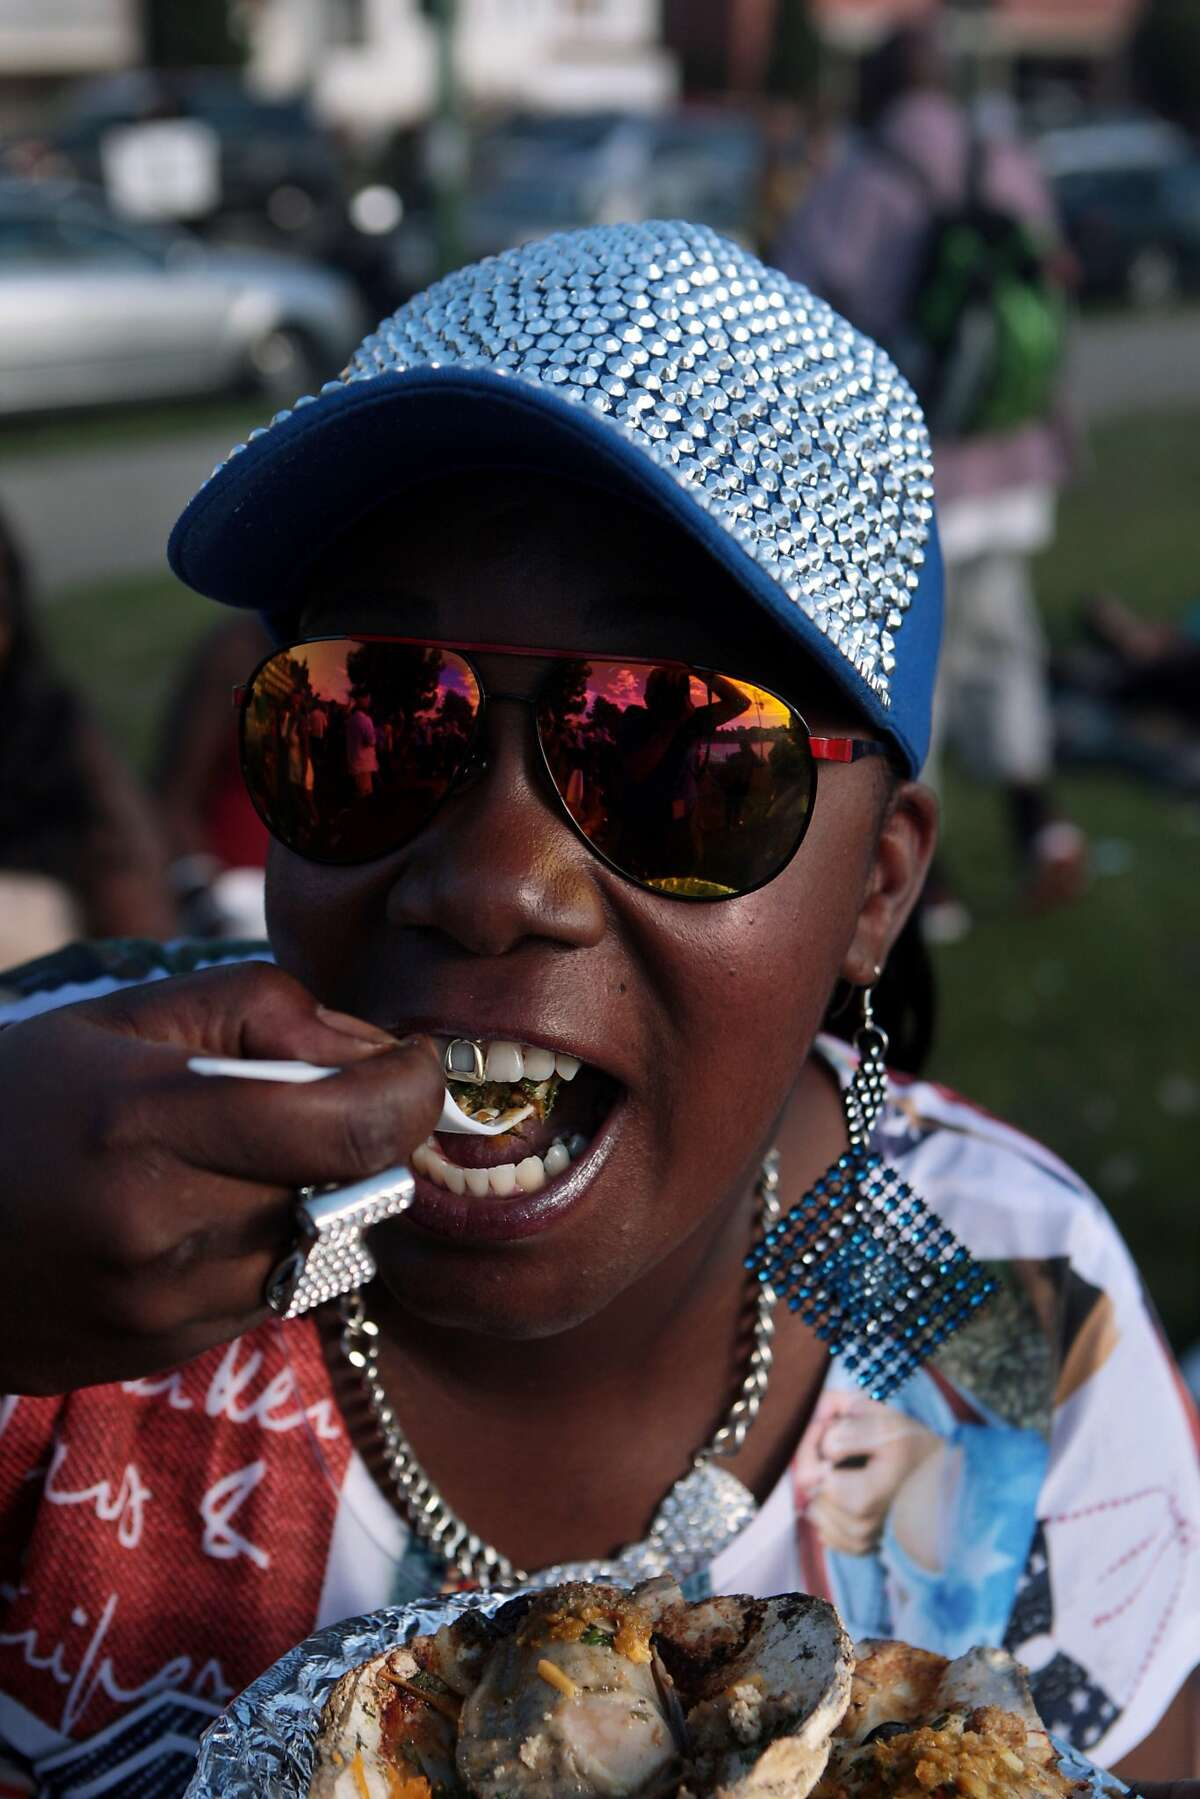 Dorian Monroe takes a bite of a seasoned barbecued oyster at a